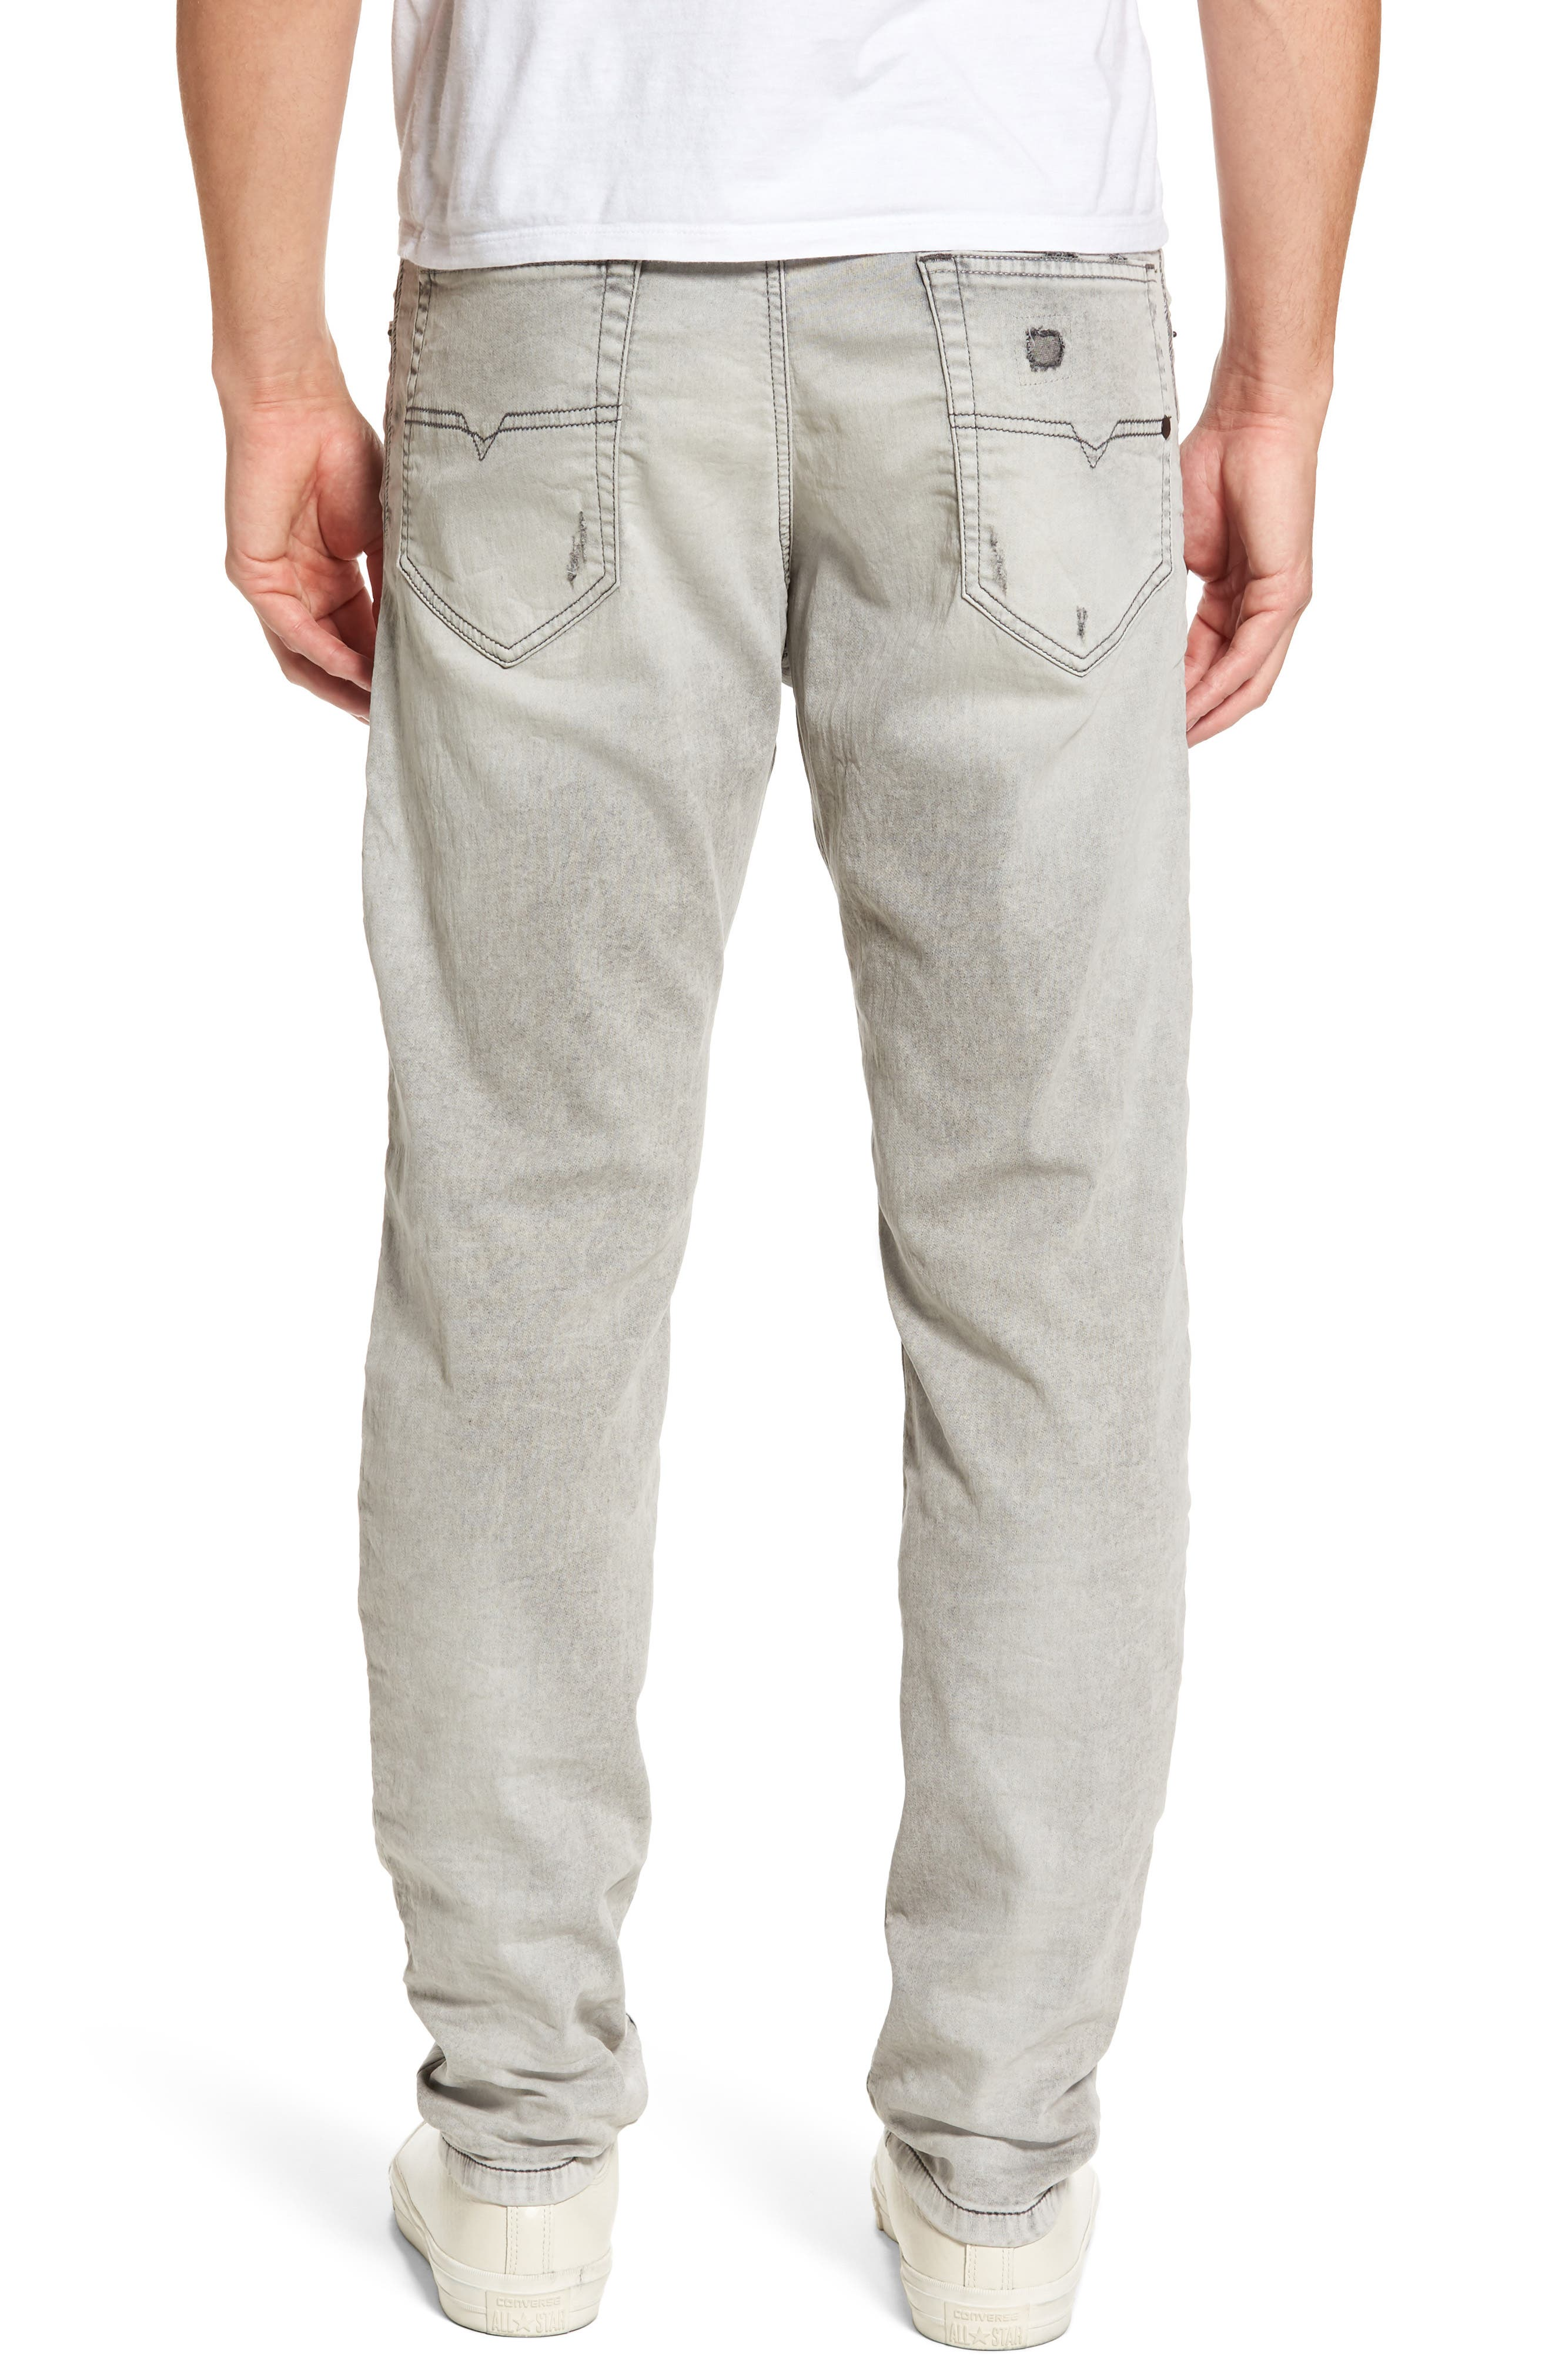 Narrot Slouchy Skinny Fit Jeans,                             Alternate thumbnail 2, color,                             008